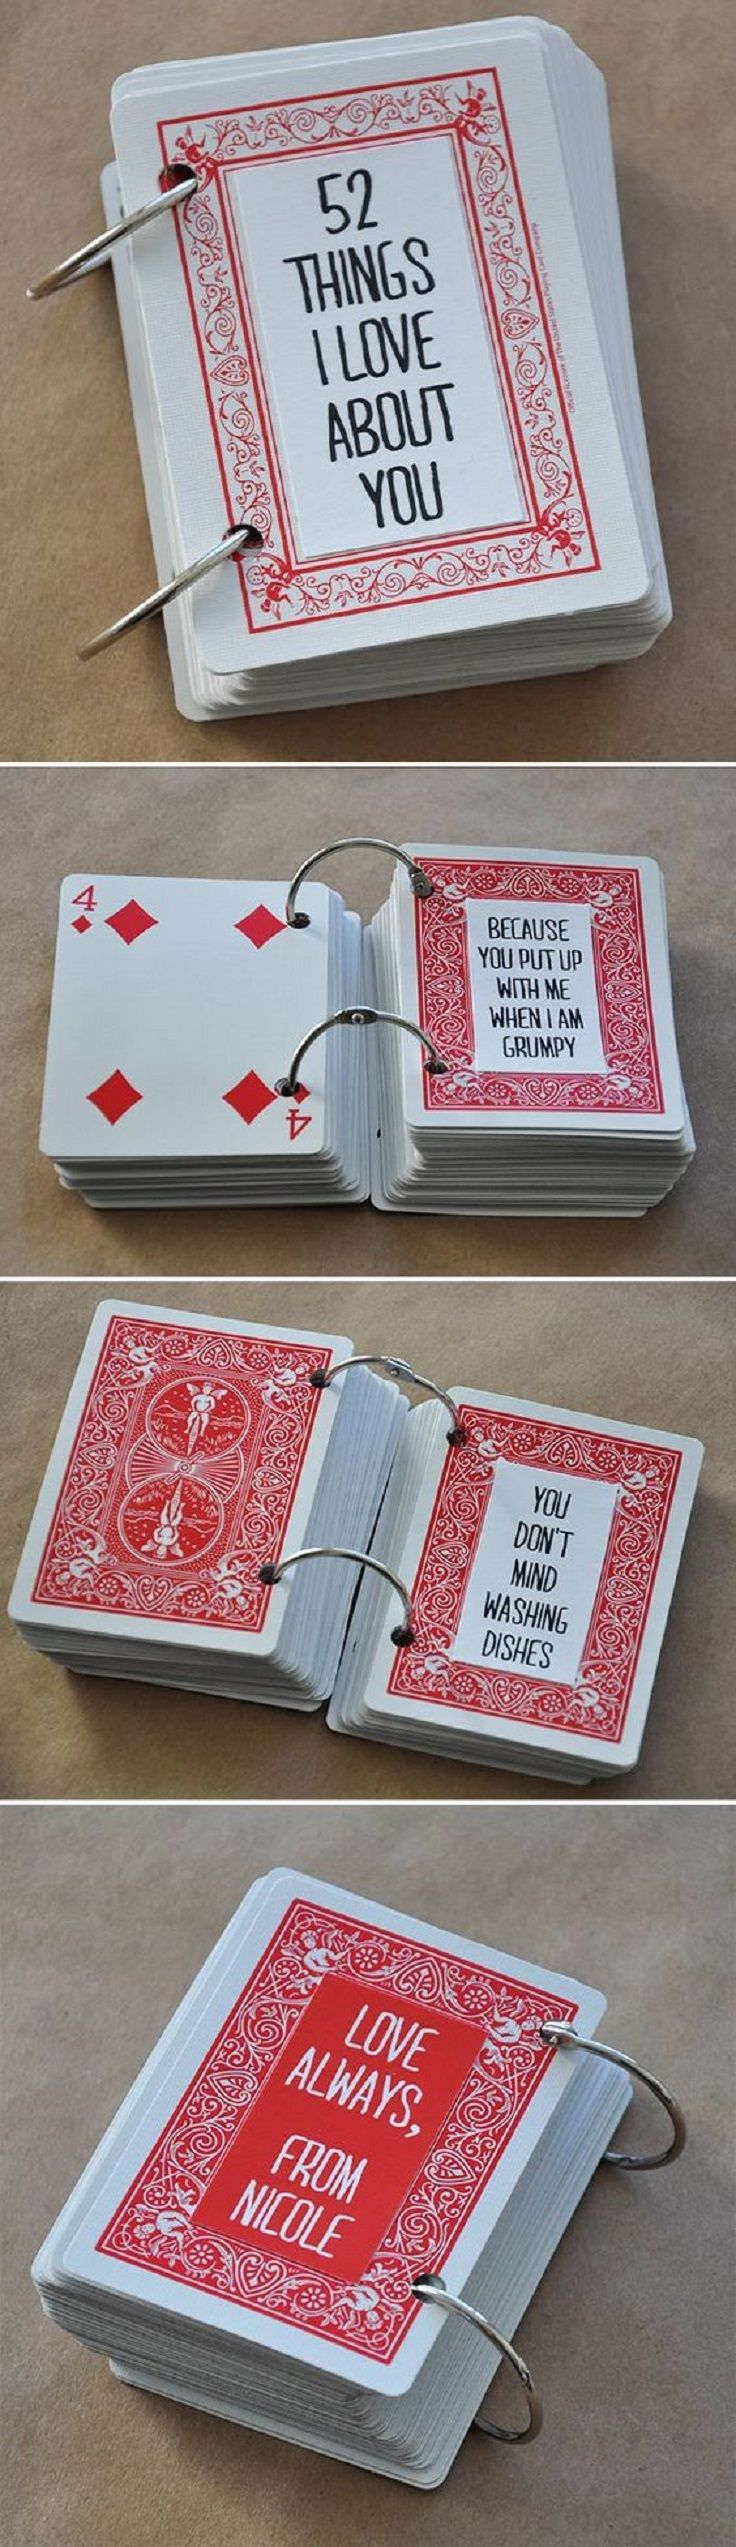 52 Things I Love About You – Perfect Present Idea for Your Man - 15 Low- Cost and Lovable DIY Valentine's Day Gifts for Him